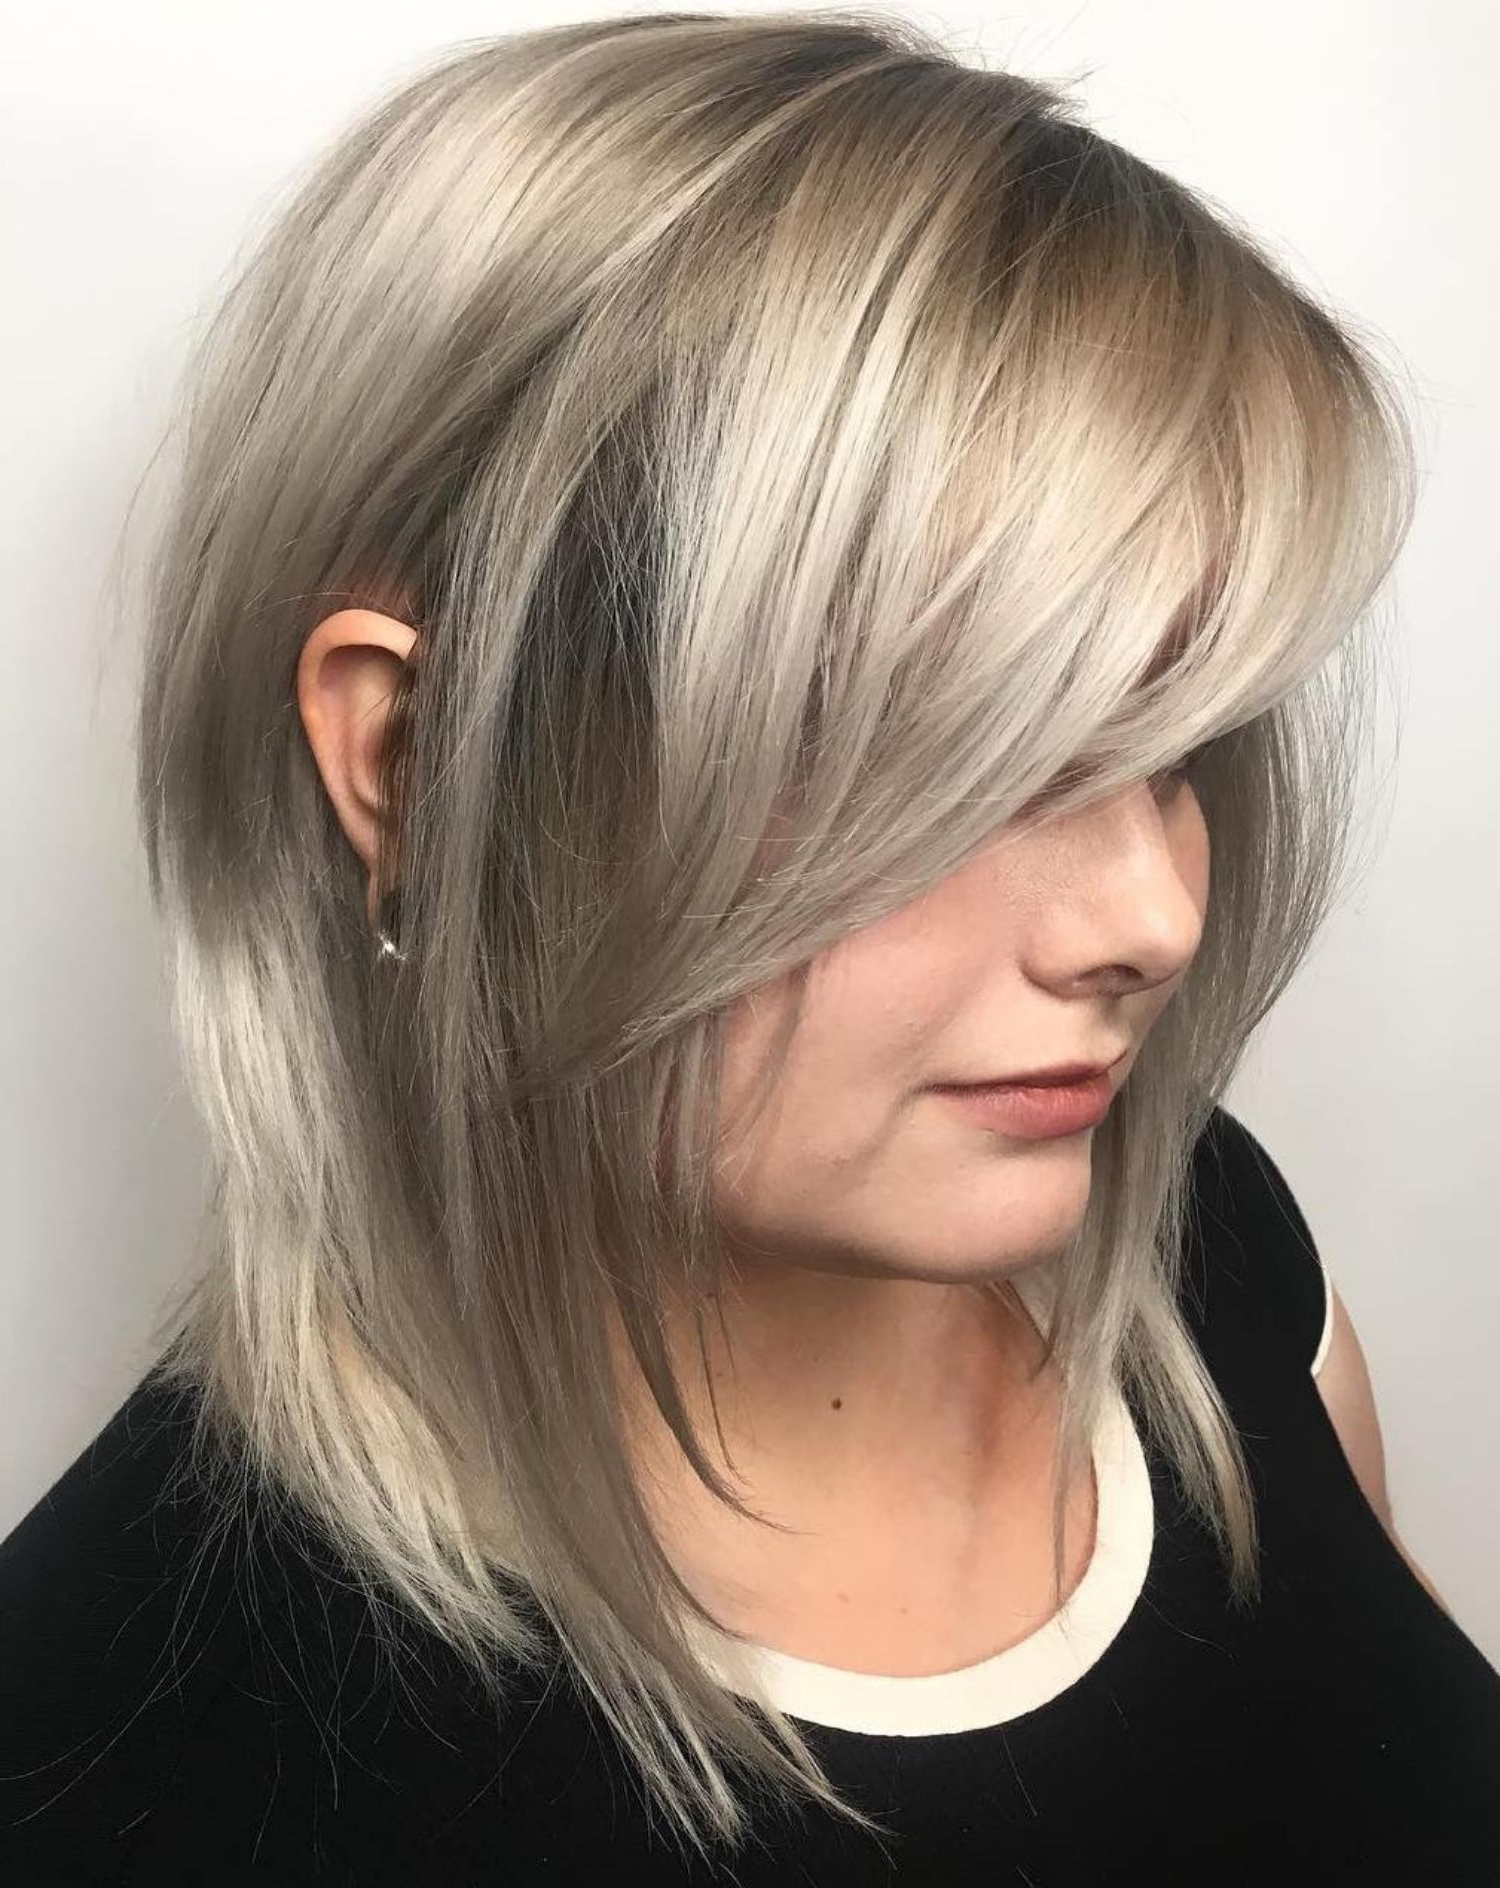 Hair (View 4 of 20)